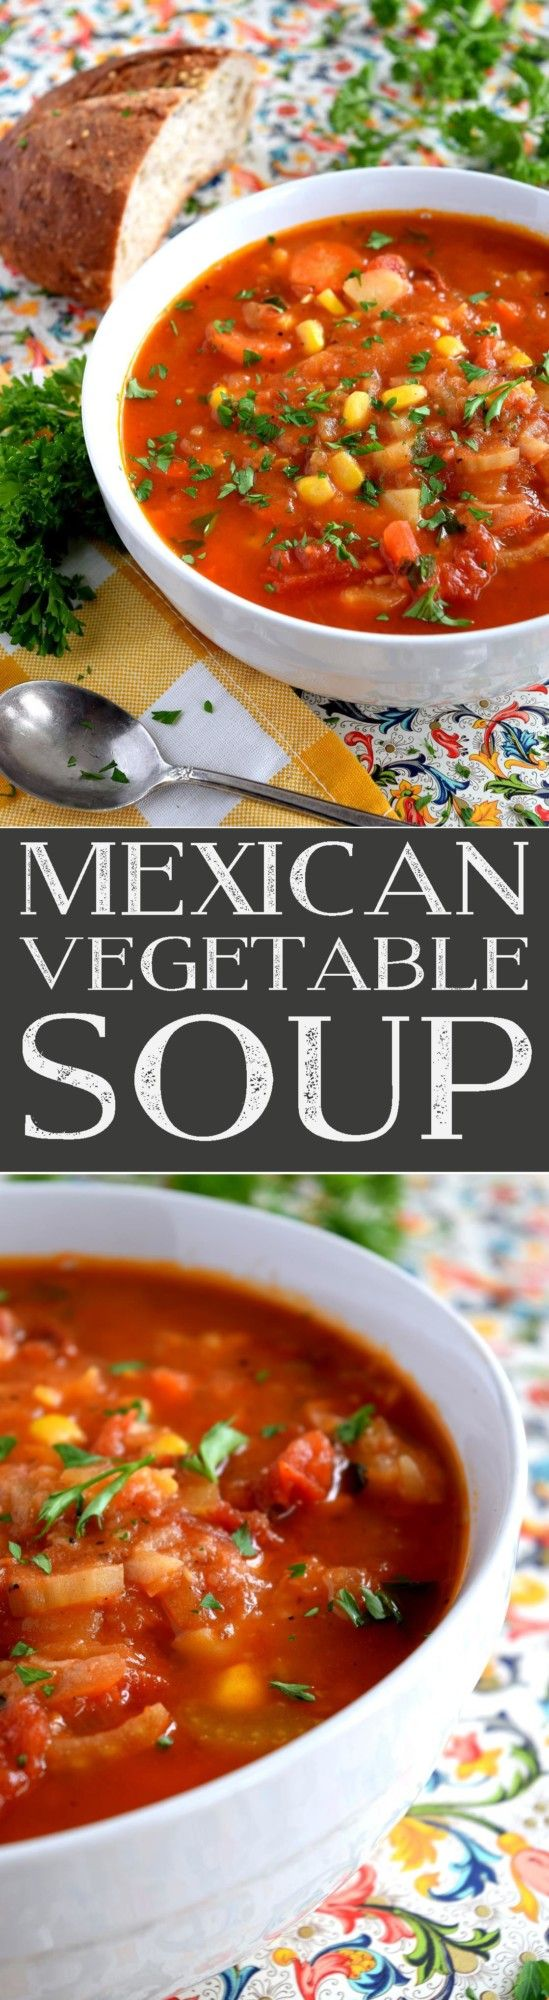 The pleasant flavours of Mexican Vegetable Soup are sure to keep you warm and cozy during the colder days of winter. Made with common root vegetables and flavoured with Mexican-inspired spices, a big bowl of this soup is sure to…